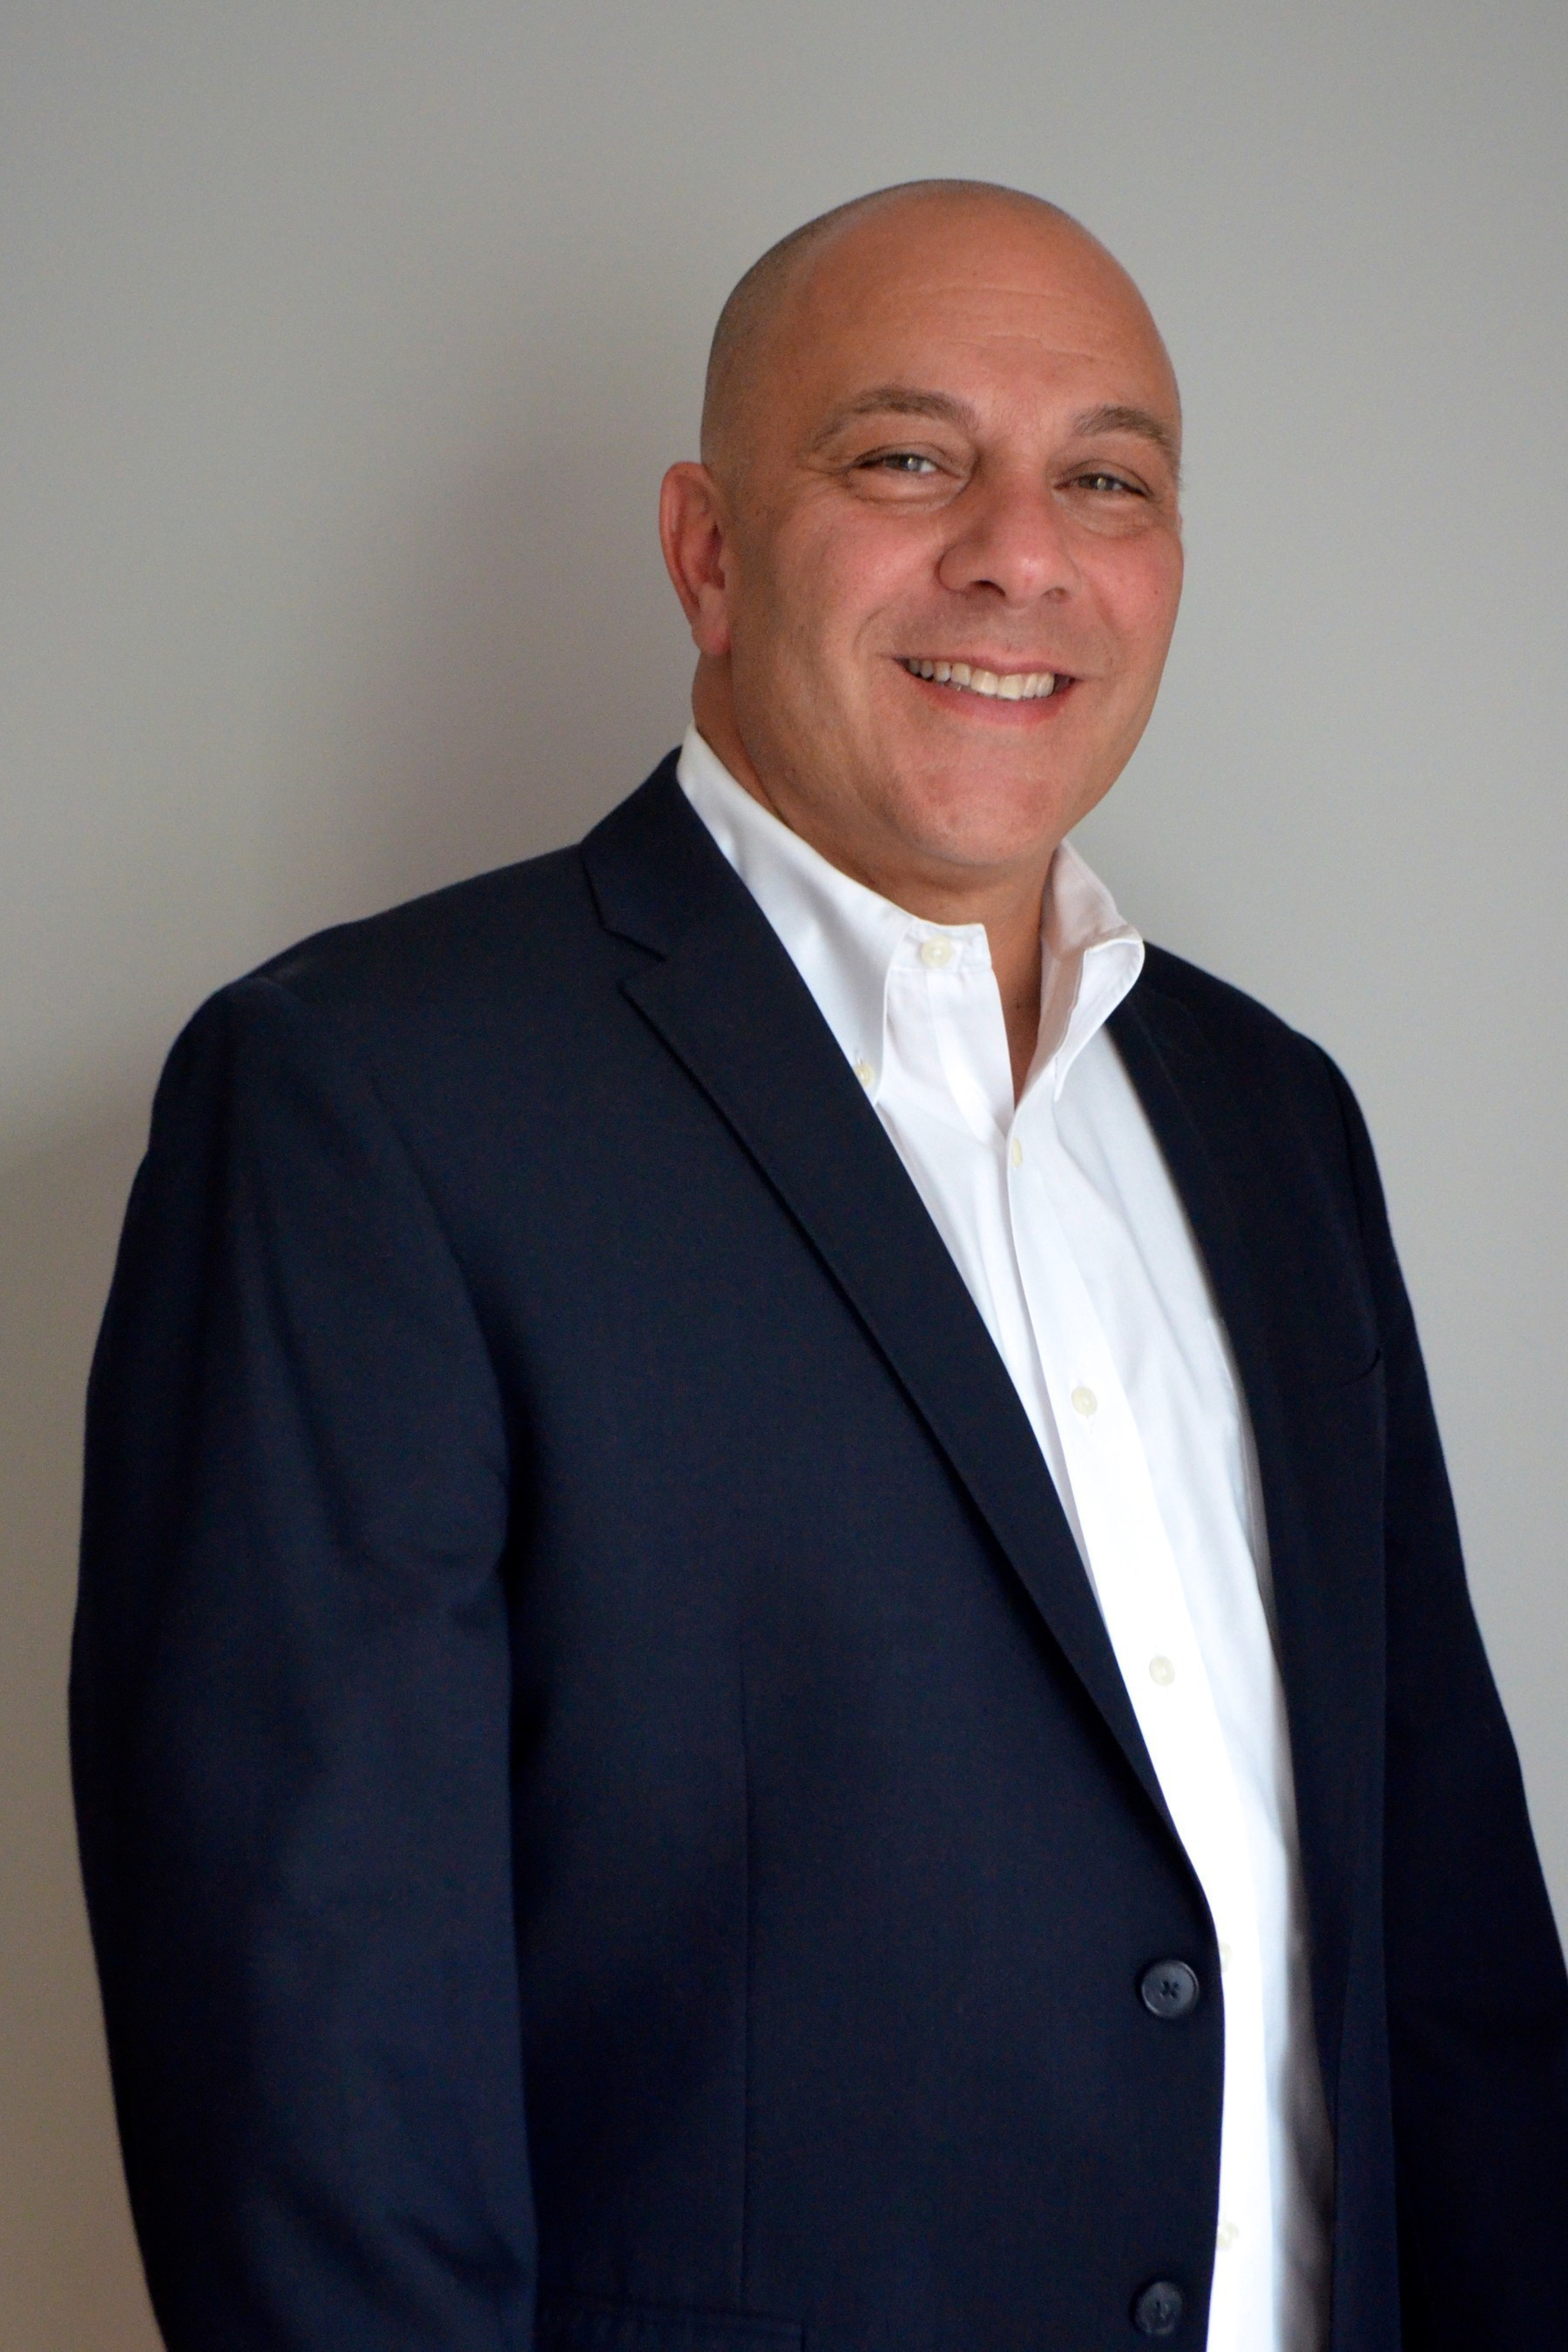 CONTROLTEK announces Salvatore Armato as Director of Sales